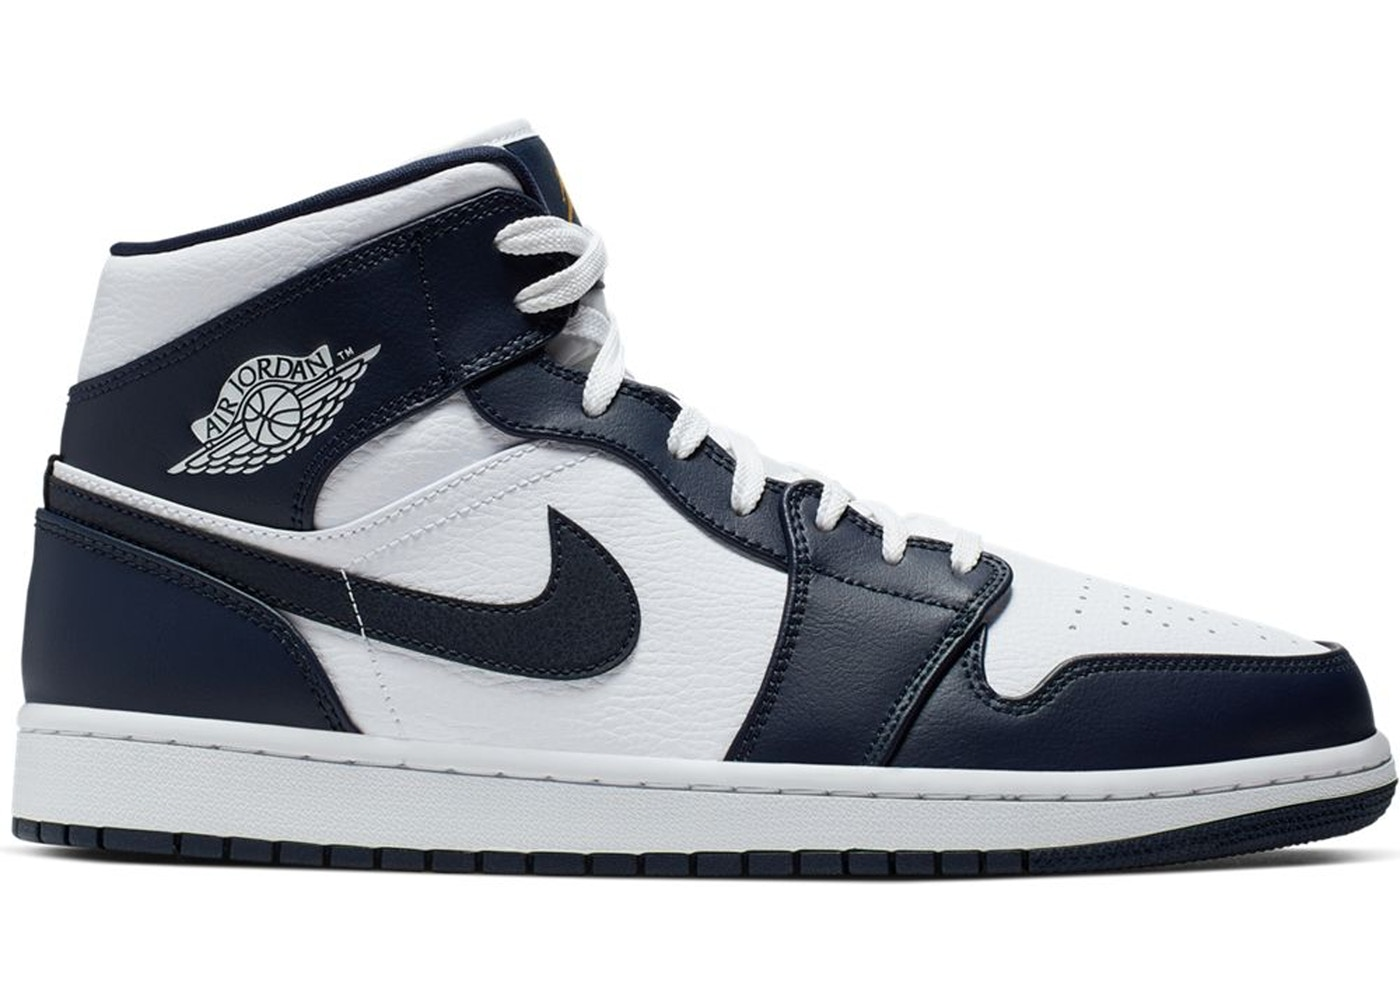 c0ad3933 Sell. or Ask. Size 7. View All Bids. Jordan 1 Mid White Metallic Gold  Obsidian